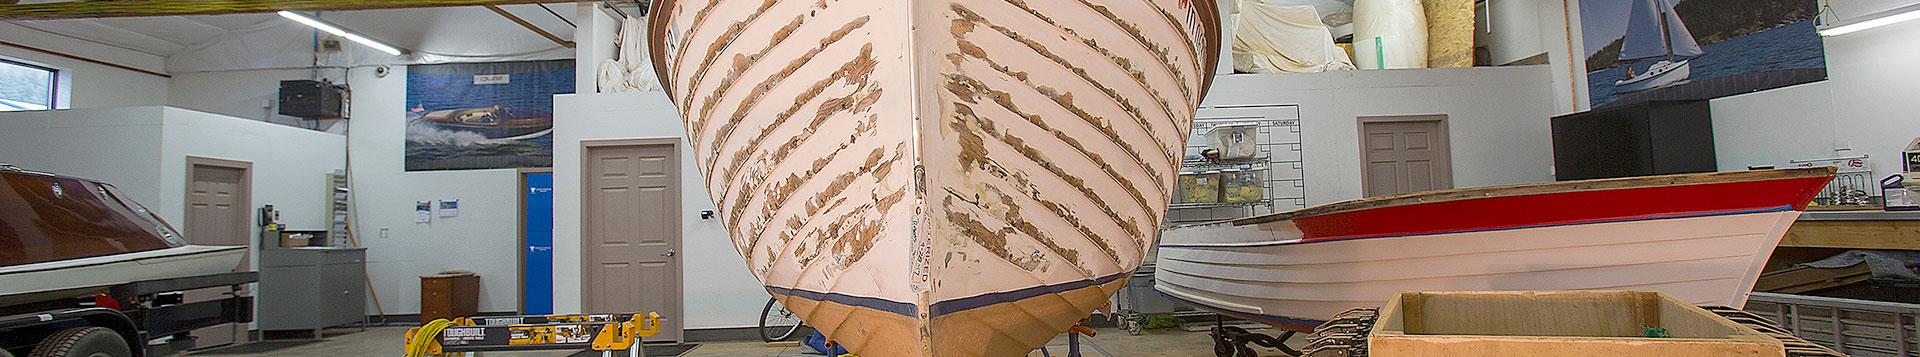 Finest wood boat restoration services, Coeur Customs